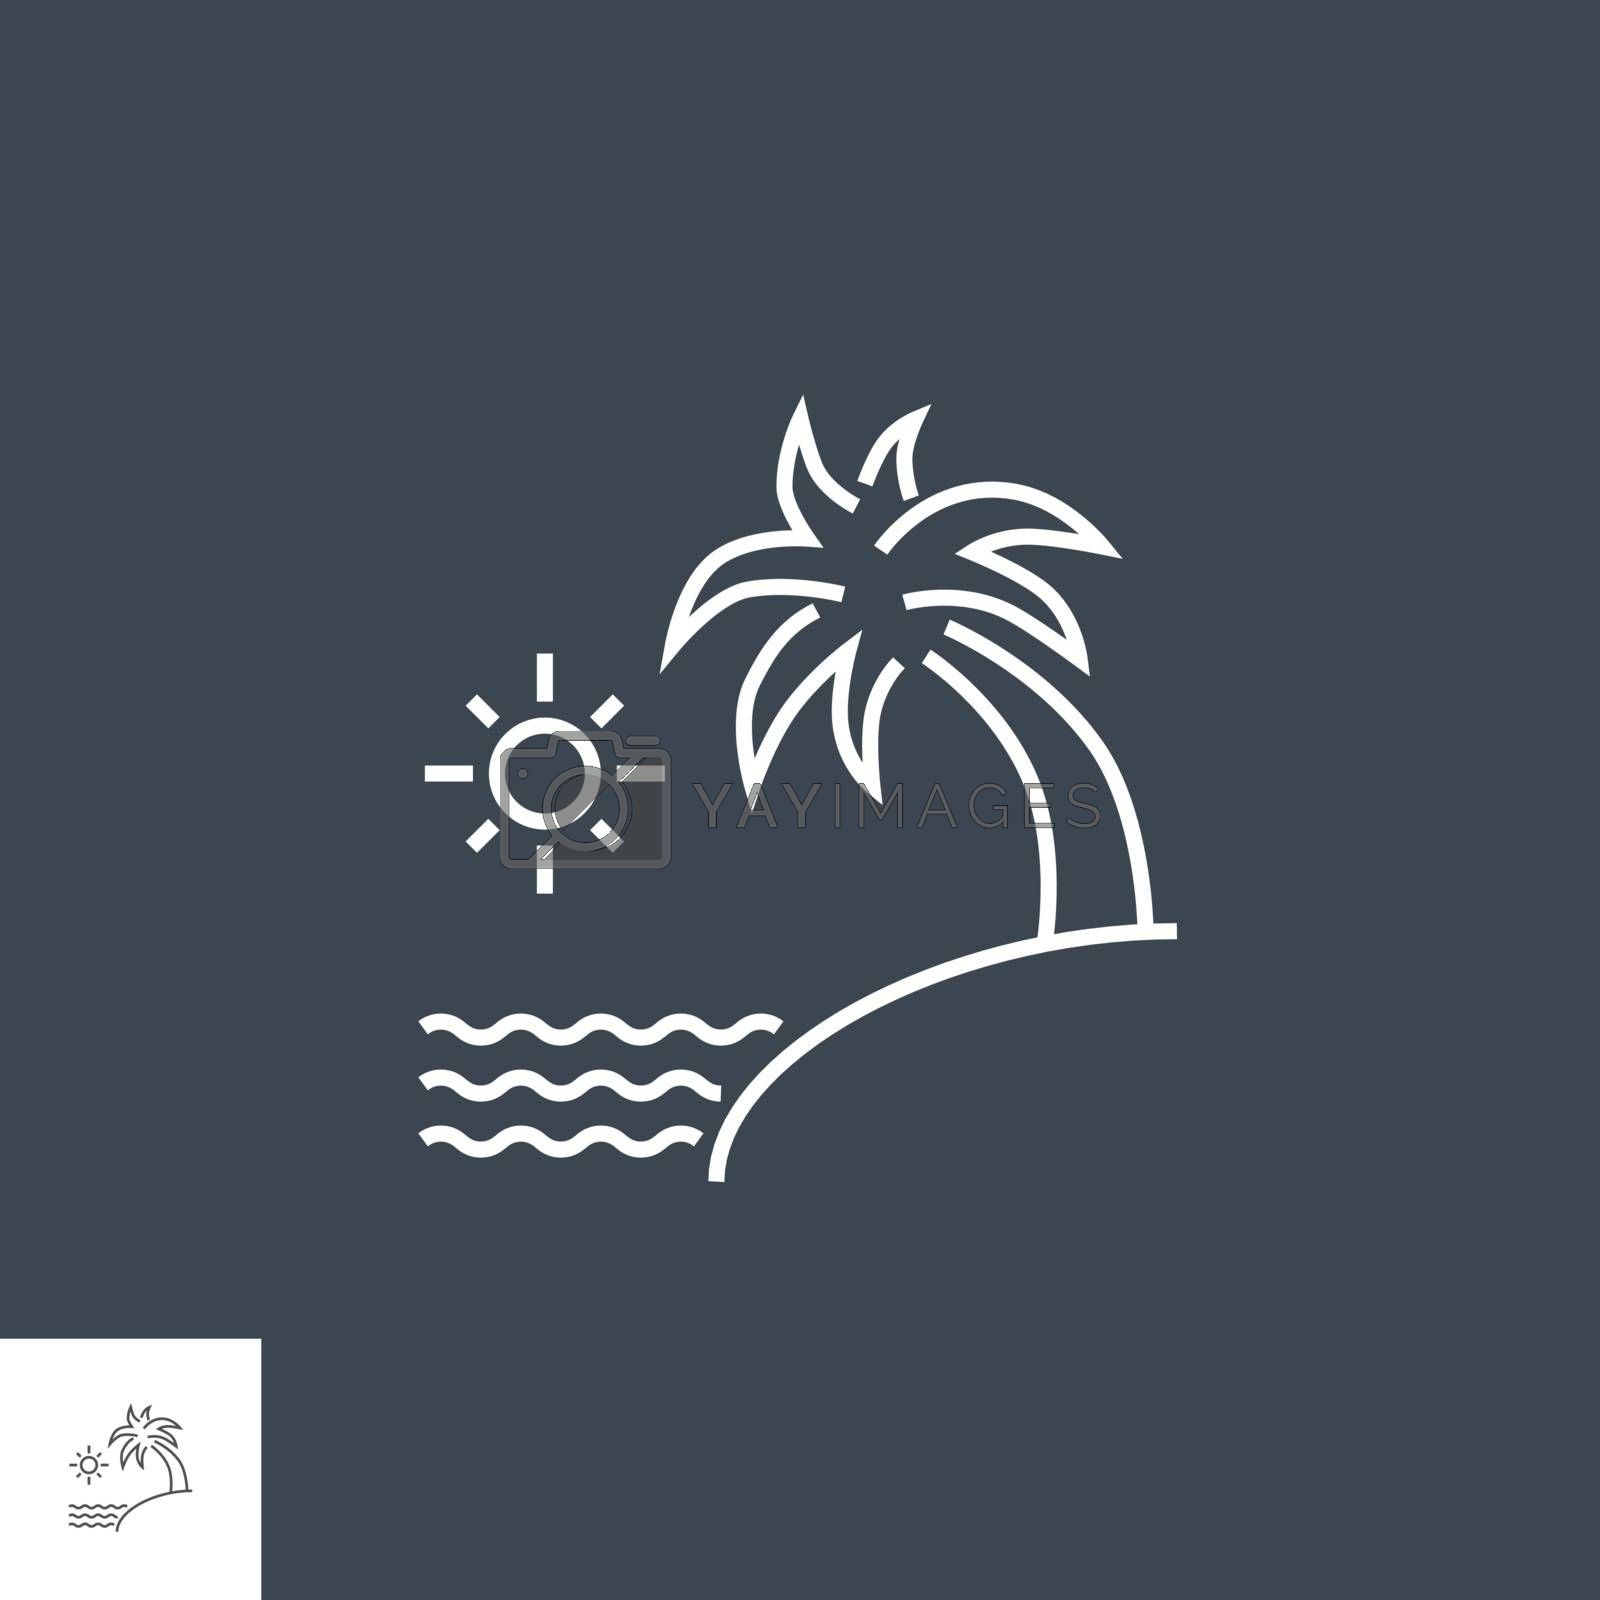 Sea and Palm Icon. Sea and Palm Related Vector Line Icon. Isolated on Black Background. Editable Stroke.